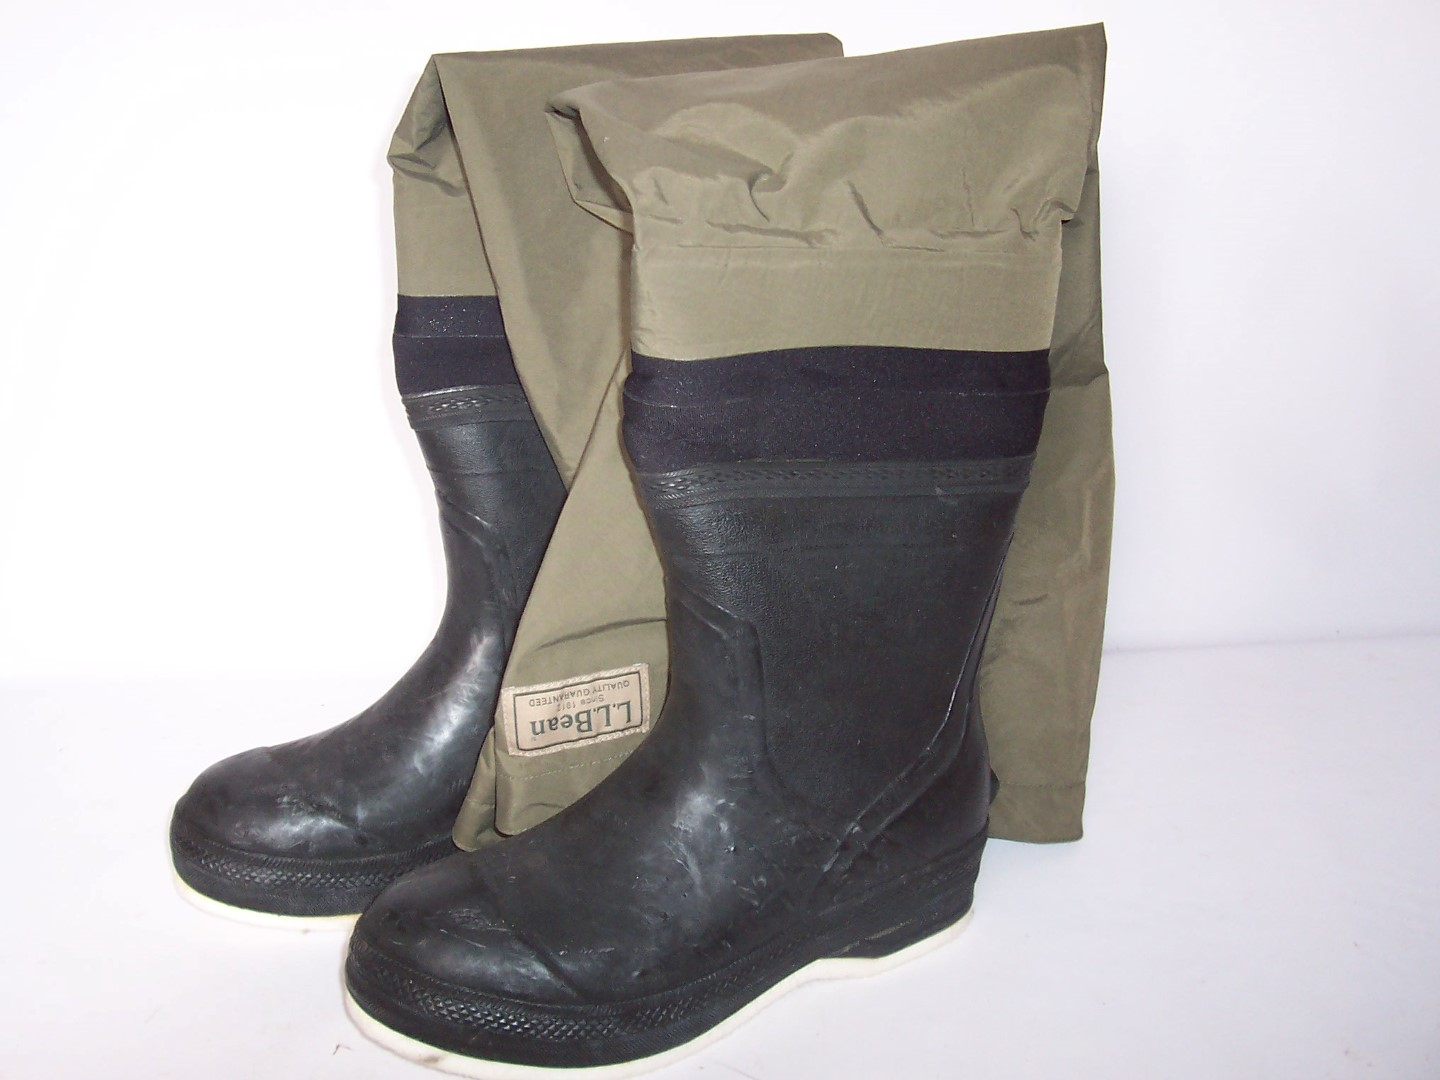 Ll bean hip waders thigh high fishing waders boots size 10 for Fishing waders with boots